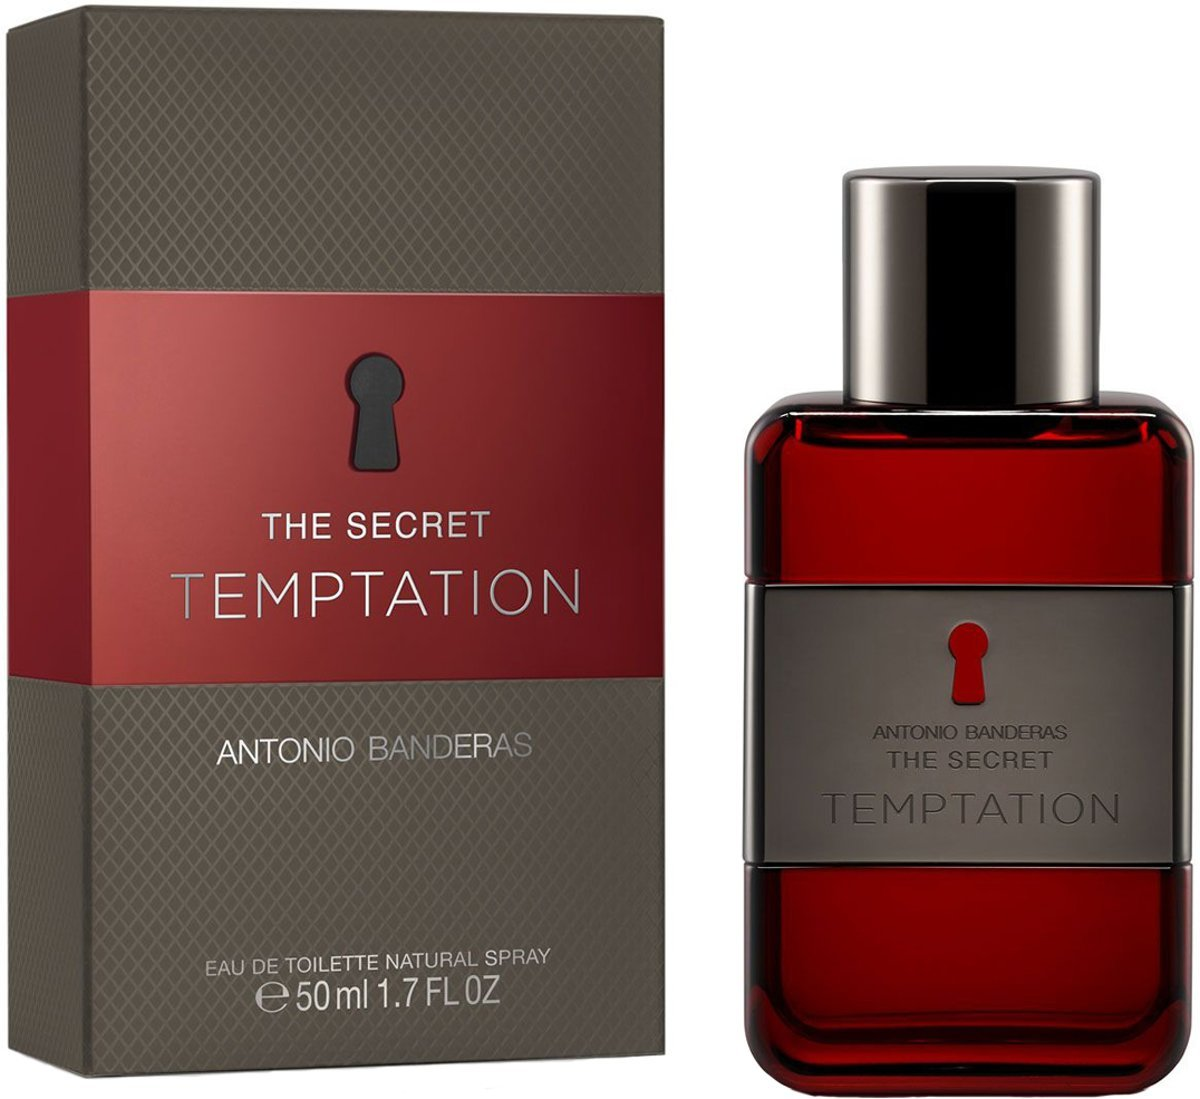 Antonio Banderas The Secret Temptation 50ml EDT Spray